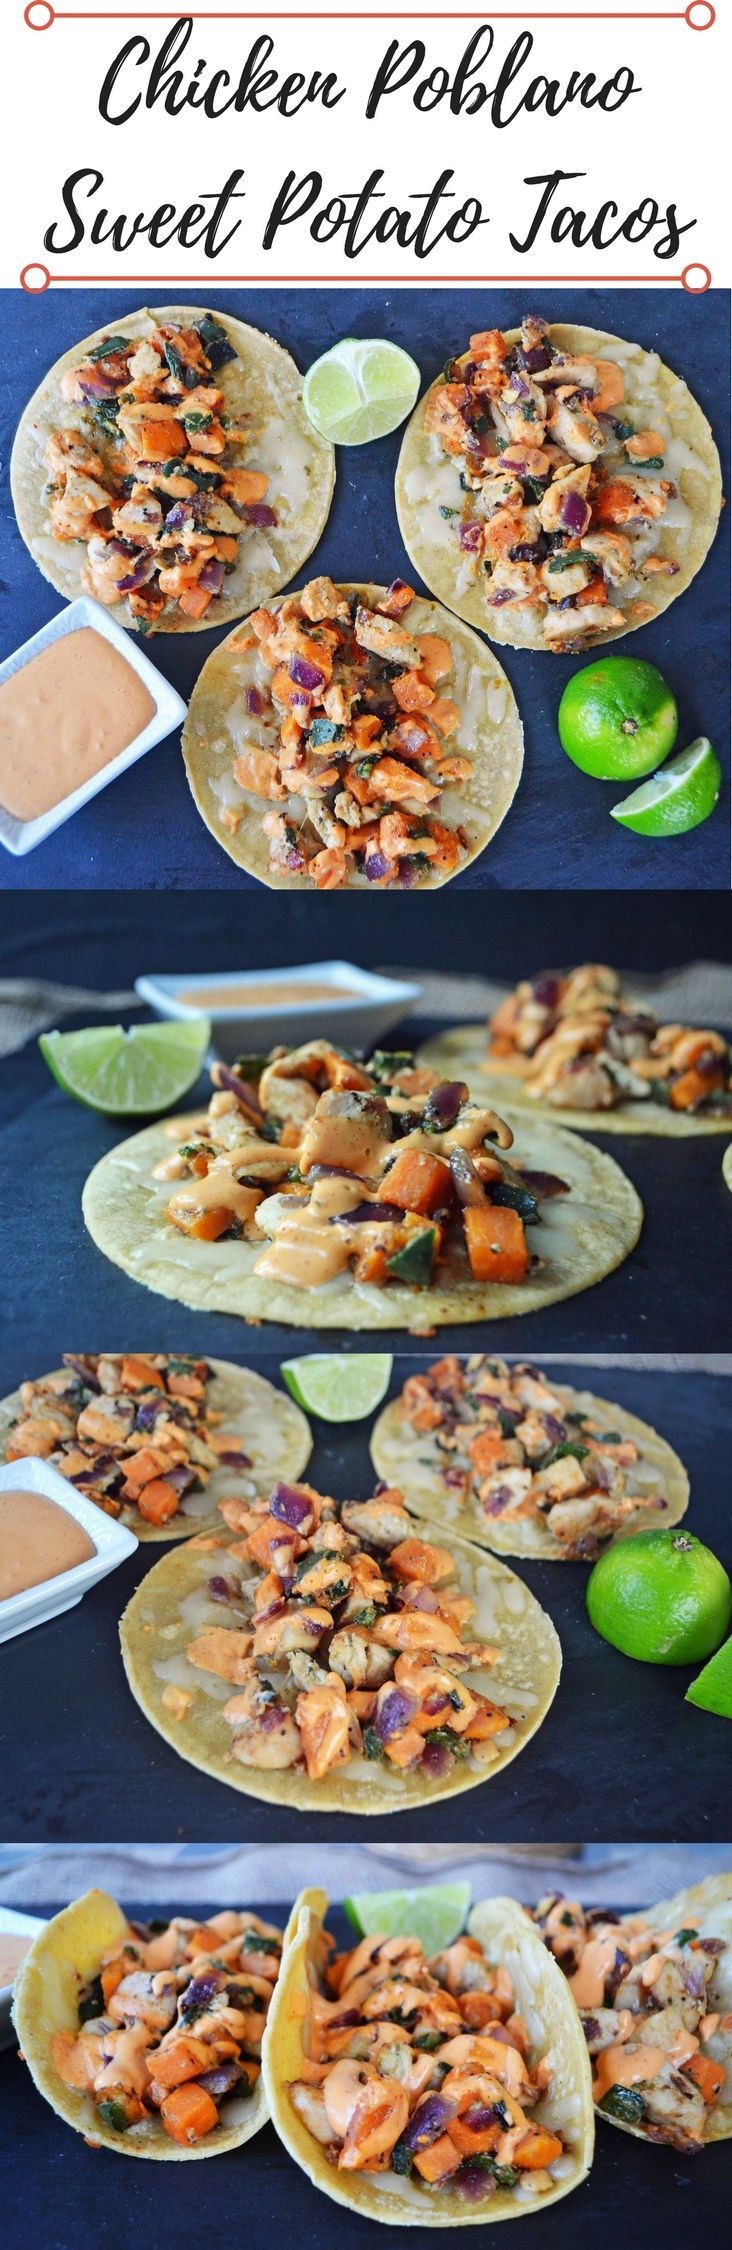 Chicken Poblano Sweet Potato Tacos are a gluten-free, quick and easy dinner. Made by sauteing lean chicken breast, poblano peppers, red onion, and sweet potatoes in mexican spices. Topped with homemade chipotle lime cream and pepper jack cheese. Flavorful and healthy mexican dinner!